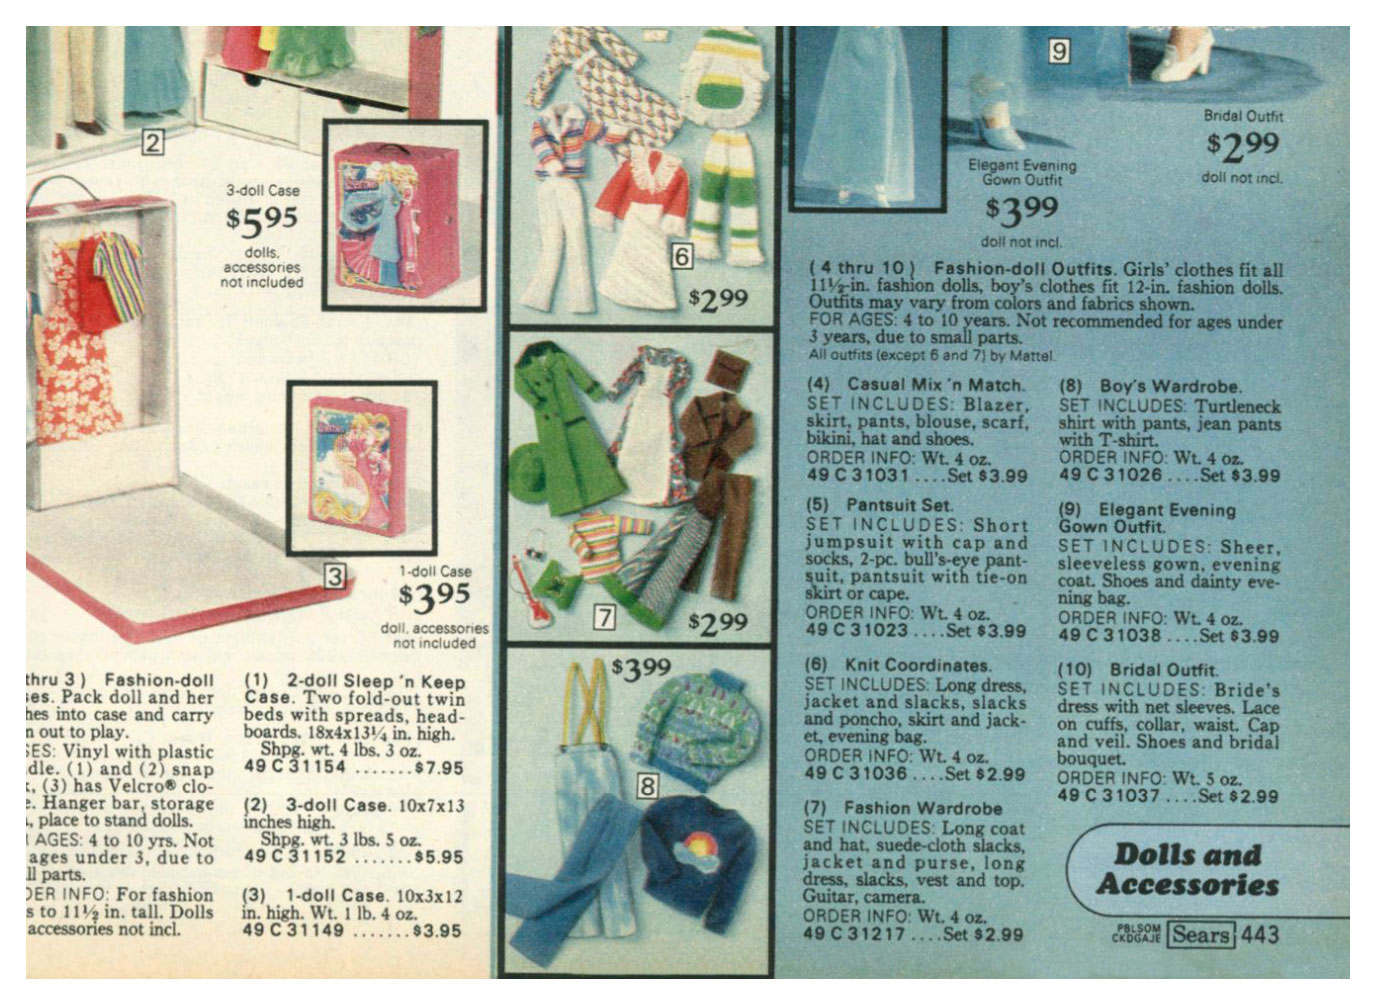 From 1977 Sears Wish Book